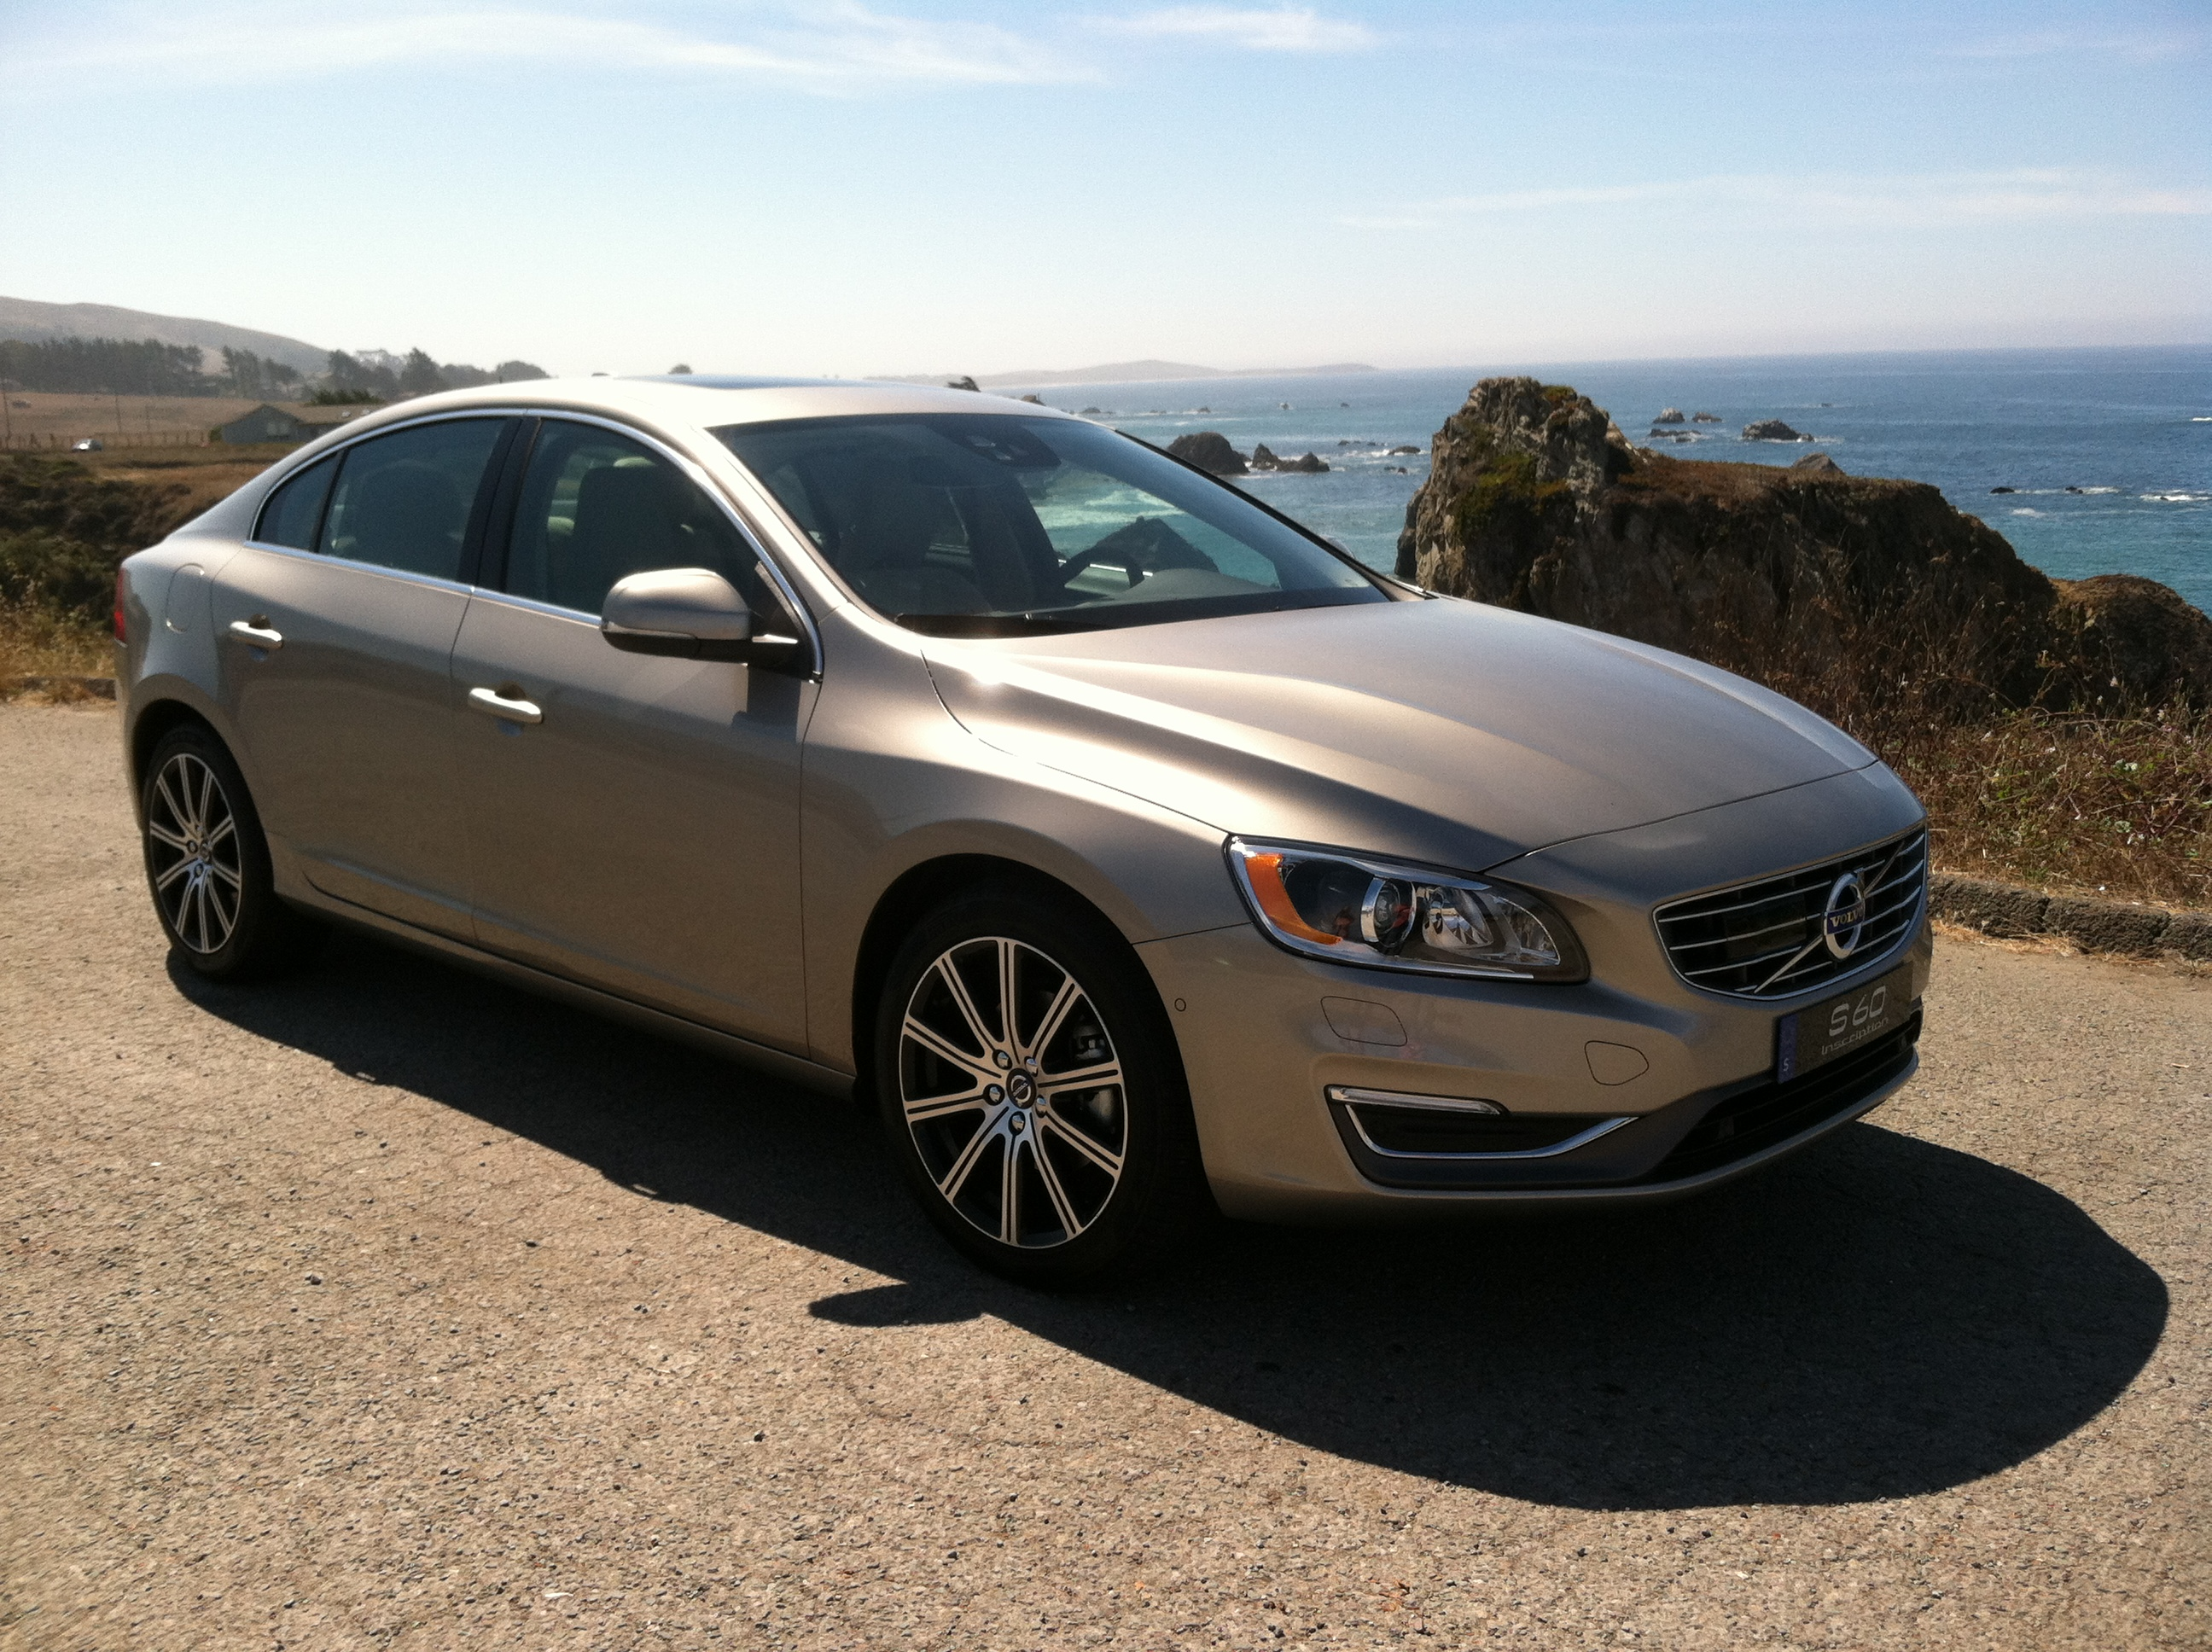 volvo adds inches and capability to the 2016 s60 lineup latino traffic report. Black Bedroom Furniture Sets. Home Design Ideas